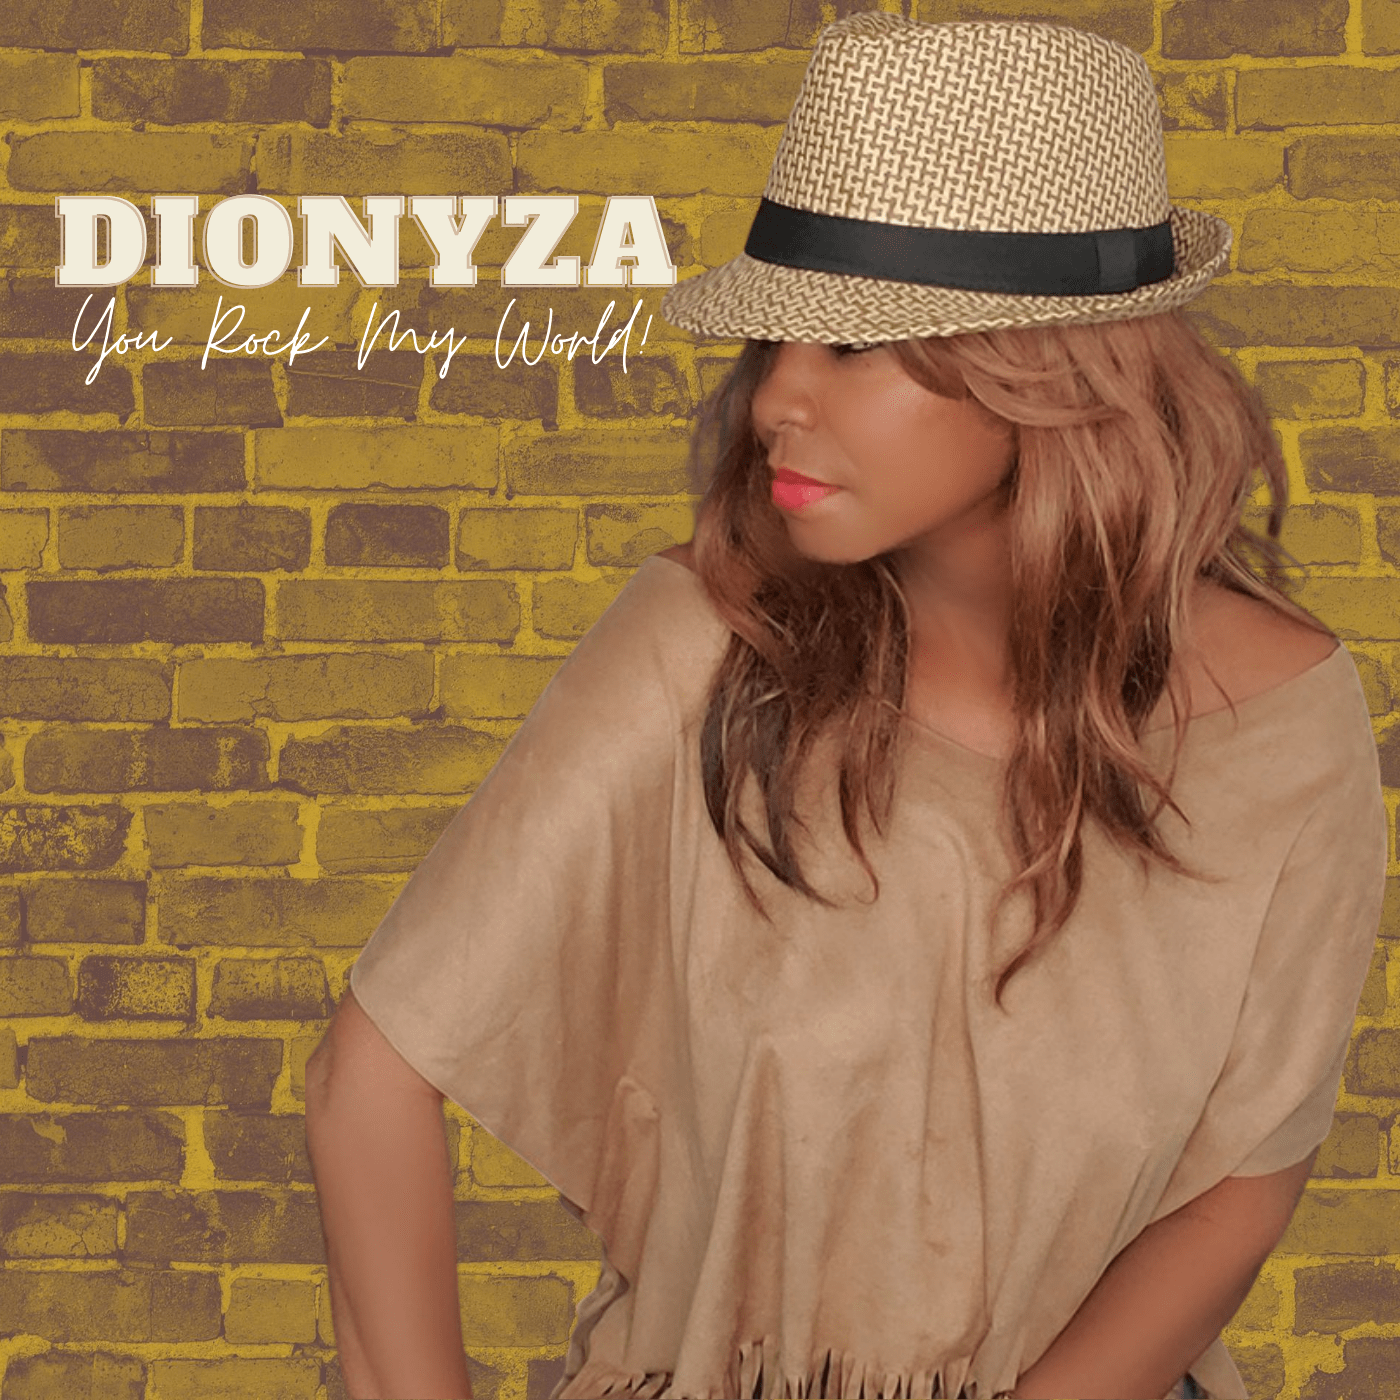 CD-COVER-DIONYZA-DEF.png